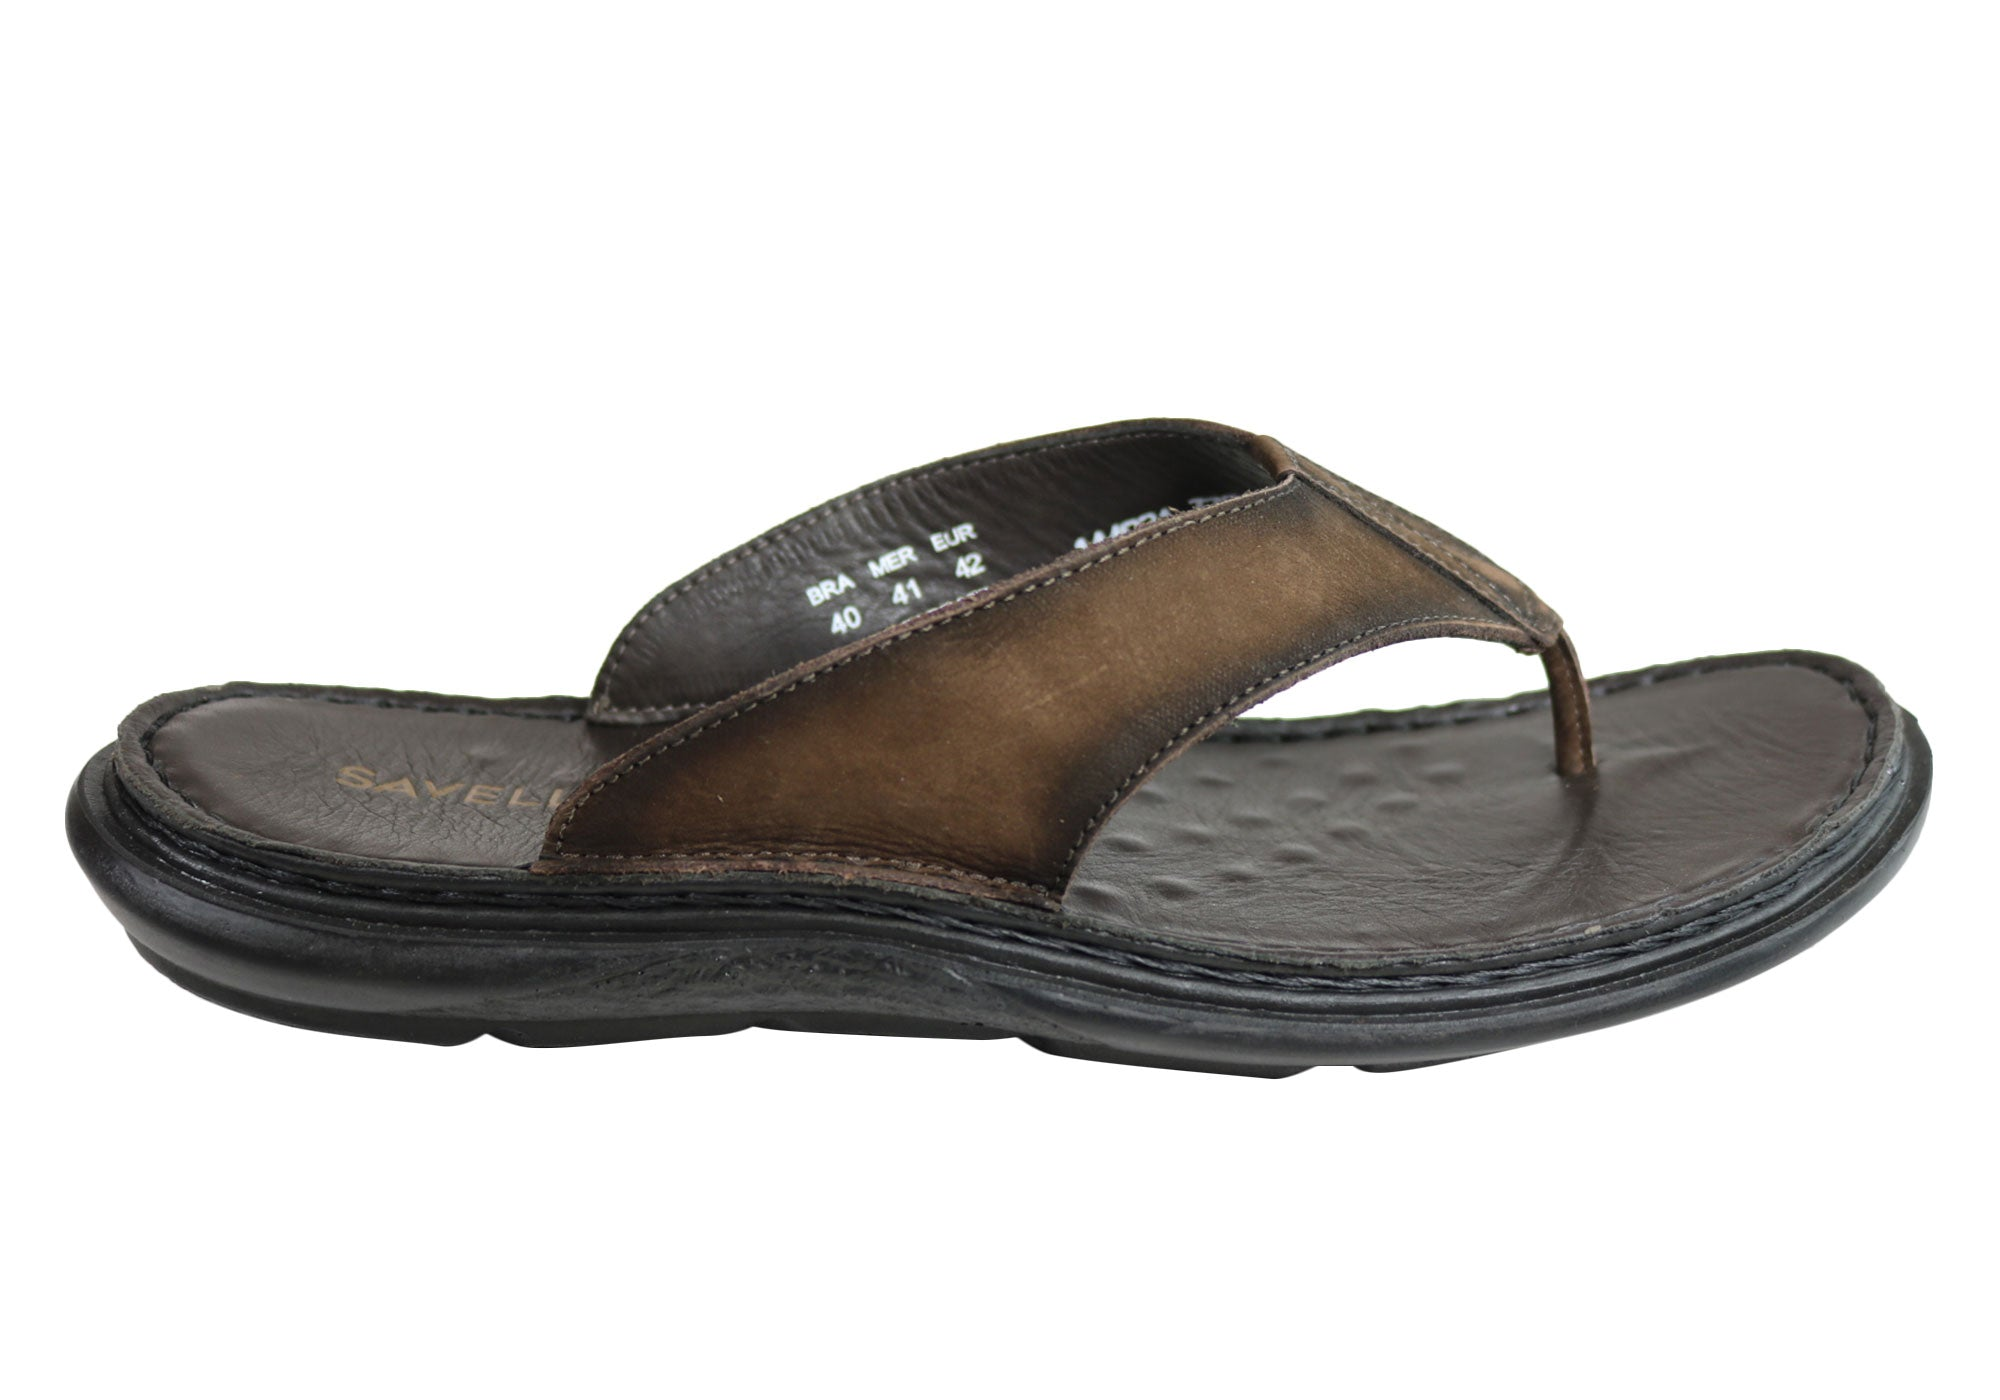 34a113a35ce89 Savelli Wyatt Mens Comfortable Leather Thongs Sandals Made In Brazil ...